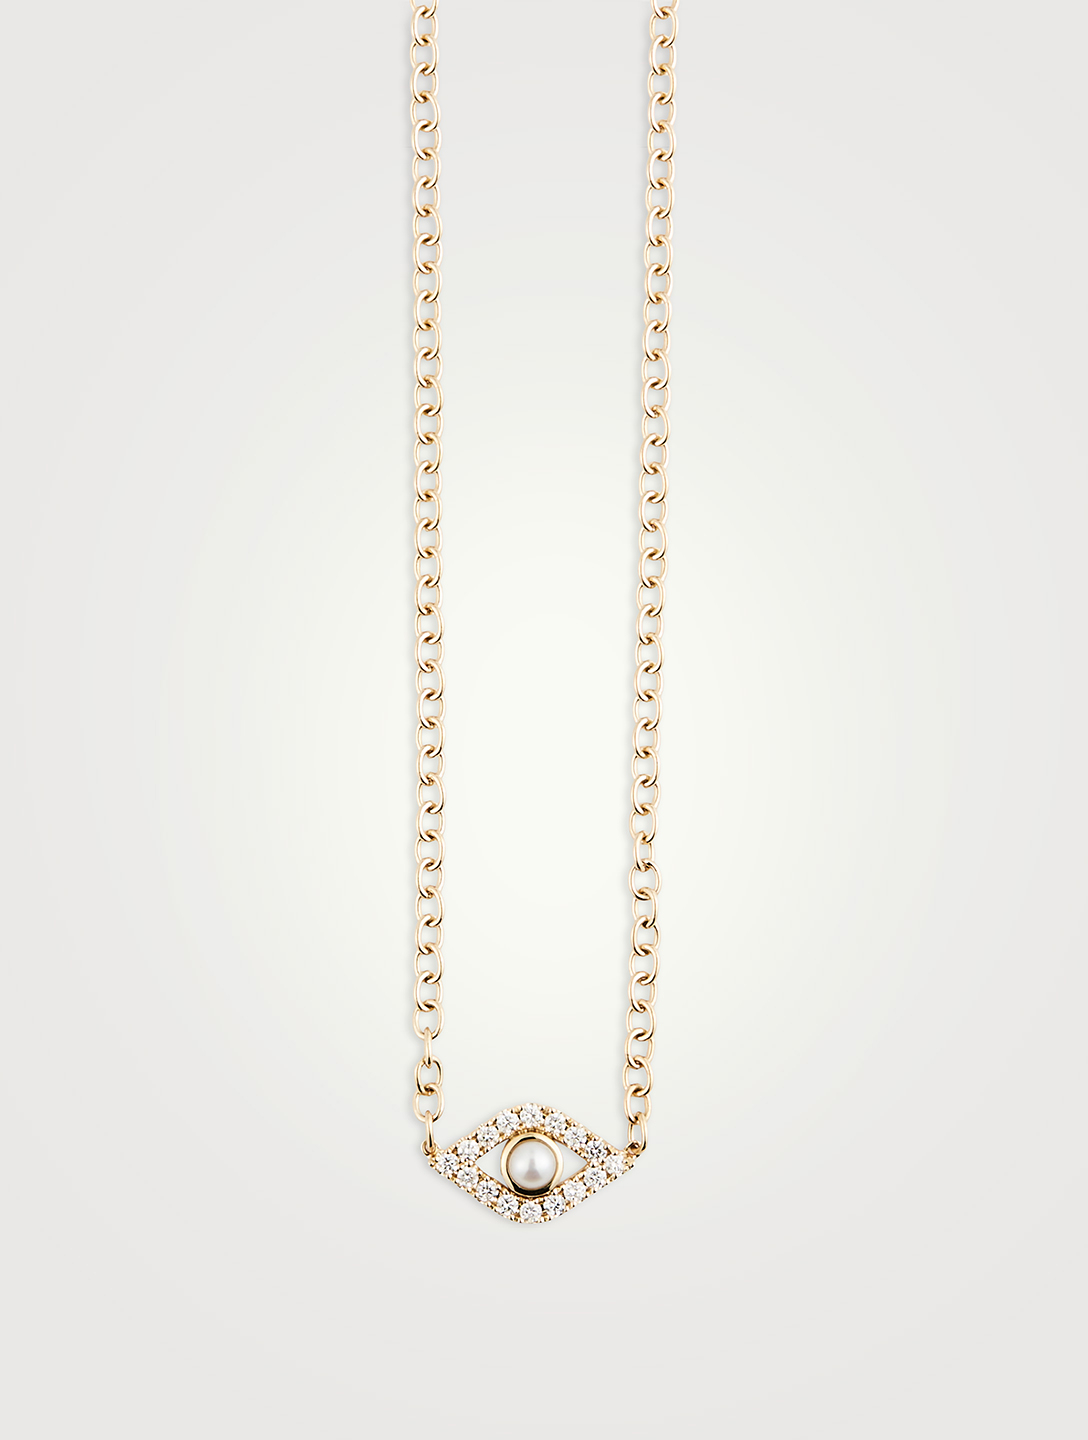 SYDNEY EVAN Extra Large 14K Gold Evil Eye Necklace With Diamonds And Pearl Women's Gold